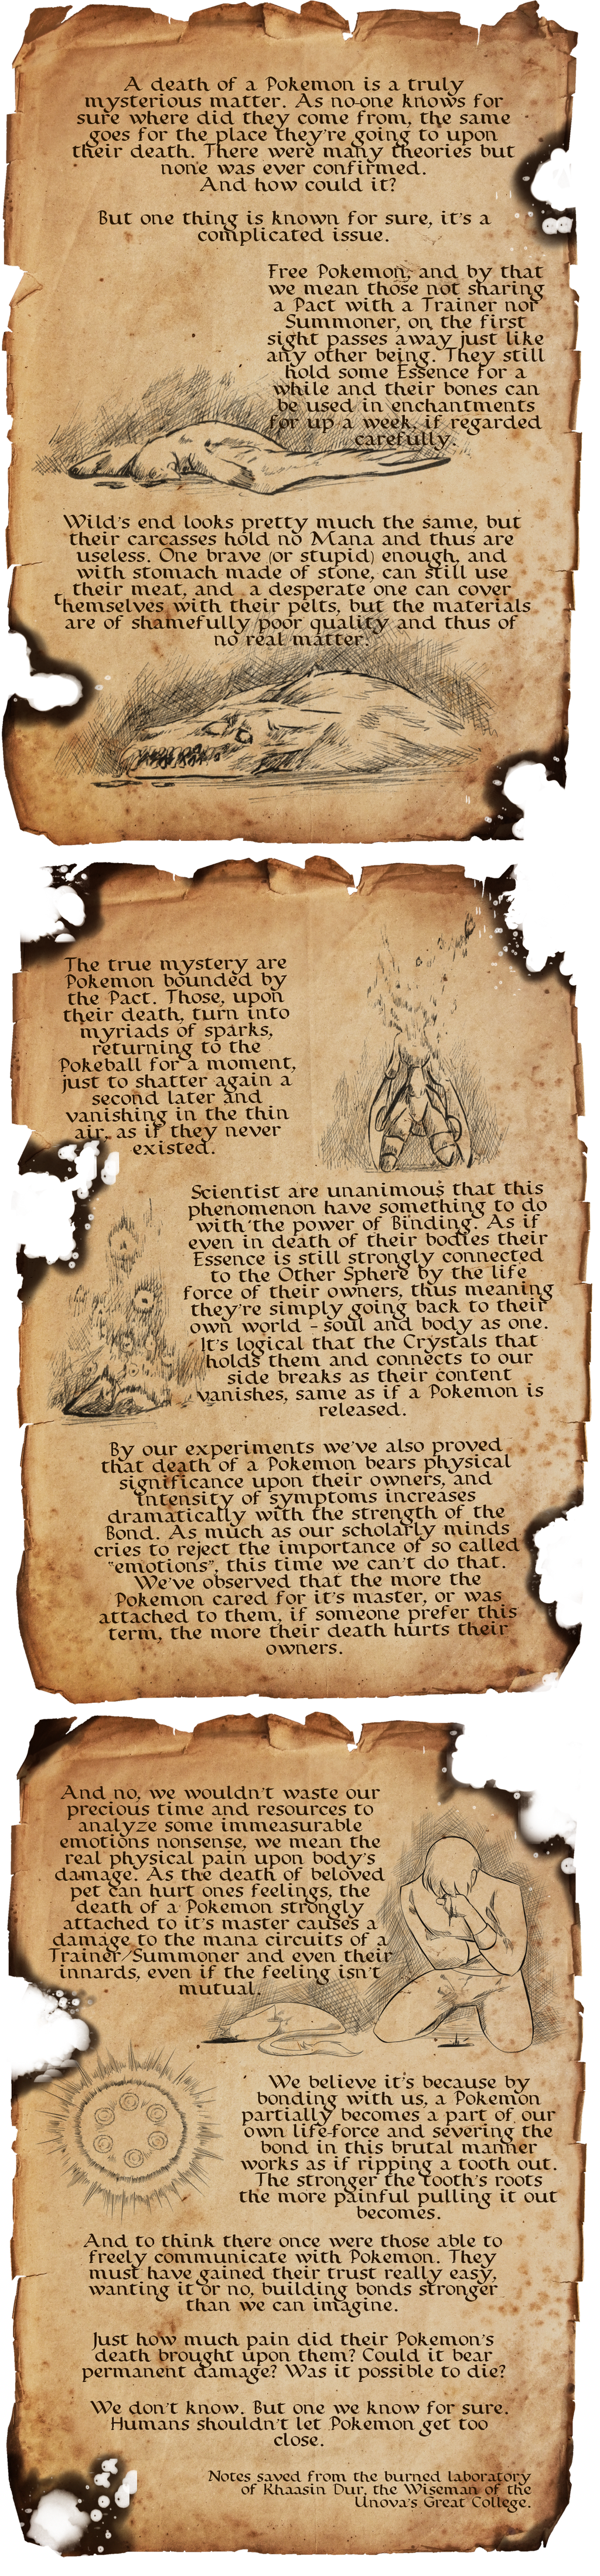 The Untold: Lore - Death by Antarija